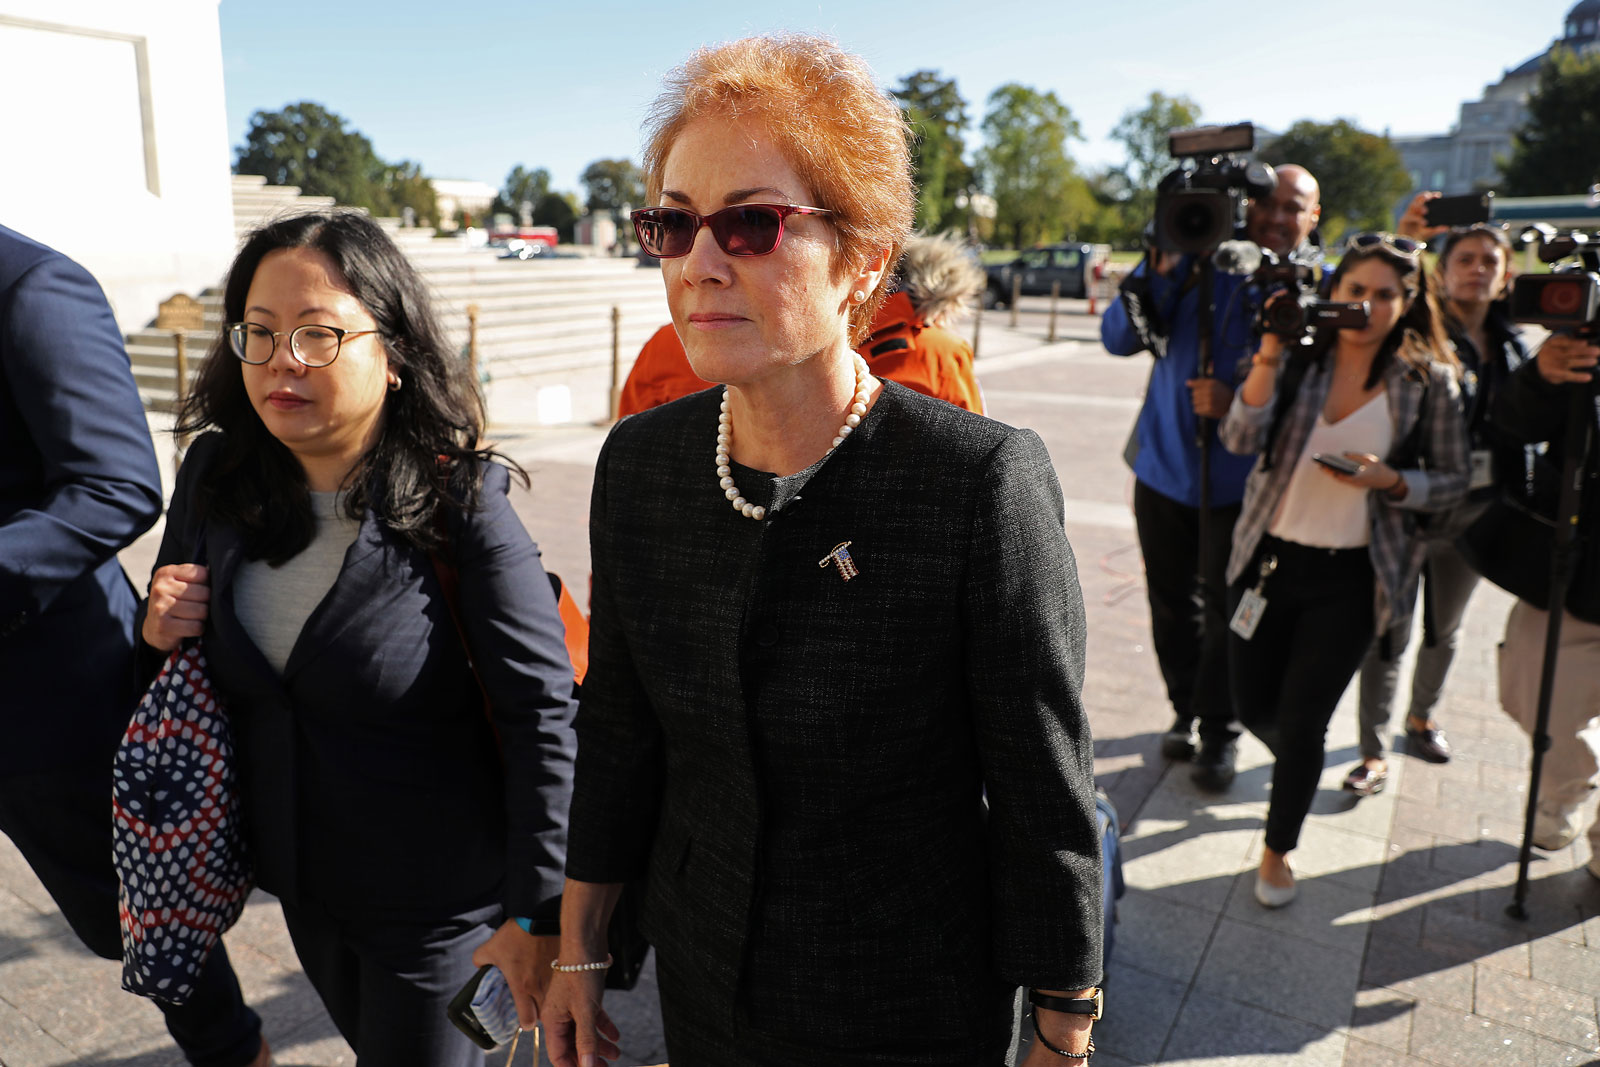 Former US Ambassador to Ukraine, Marie Yovanovitch, arriving at the US Capitol to testify as part of the ongoing impeachment investigation against President Donald Trump, October 11, 2019